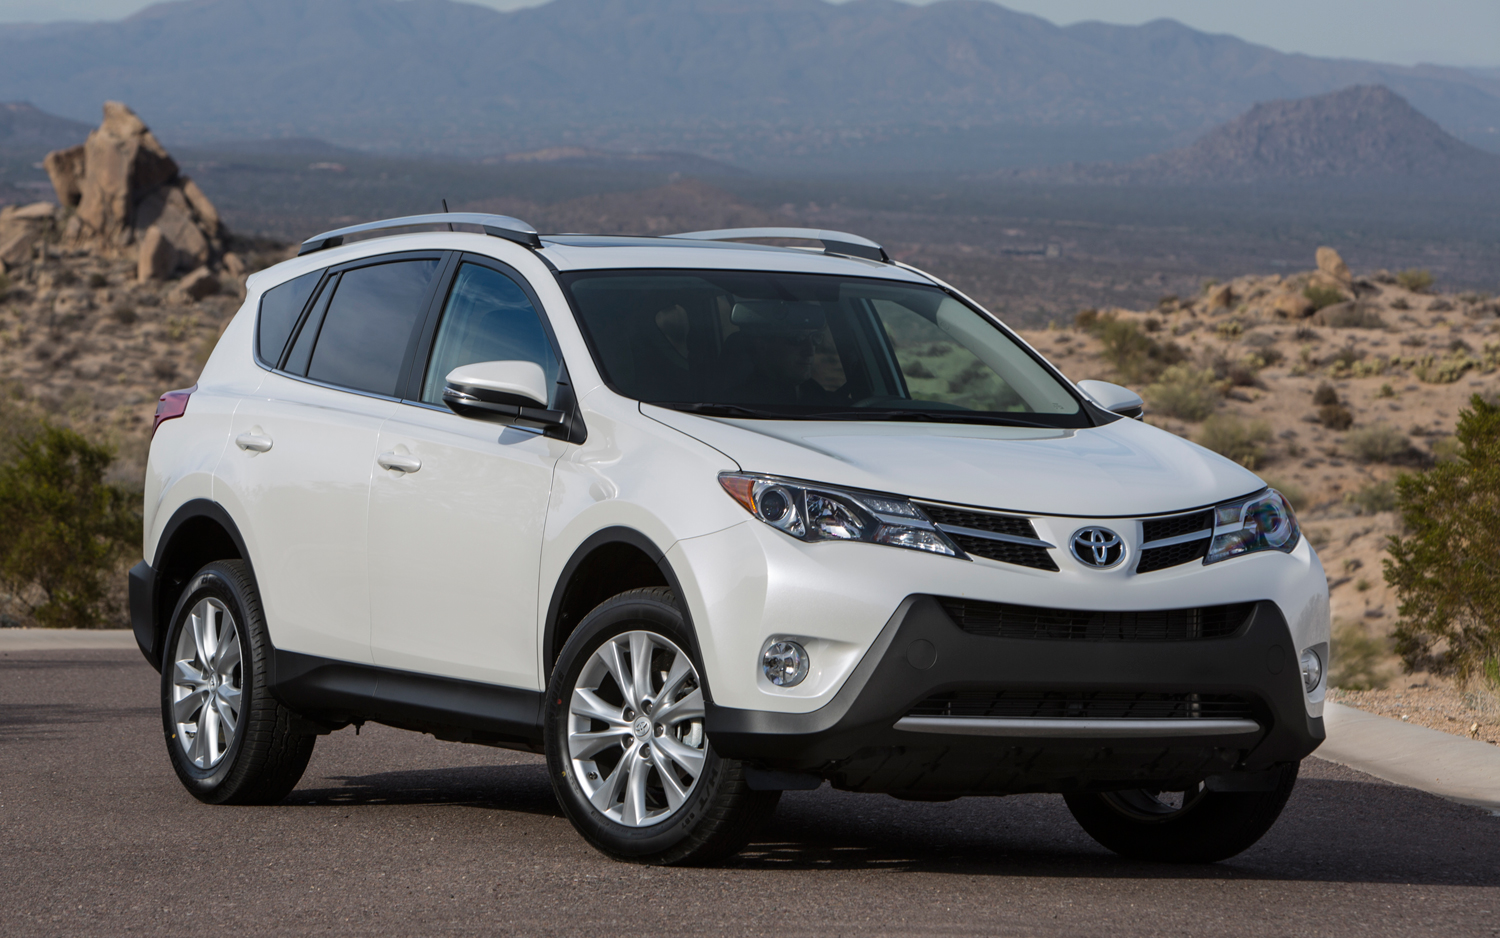 2014 toyota rav4. Black Bedroom Furniture Sets. Home Design Ideas